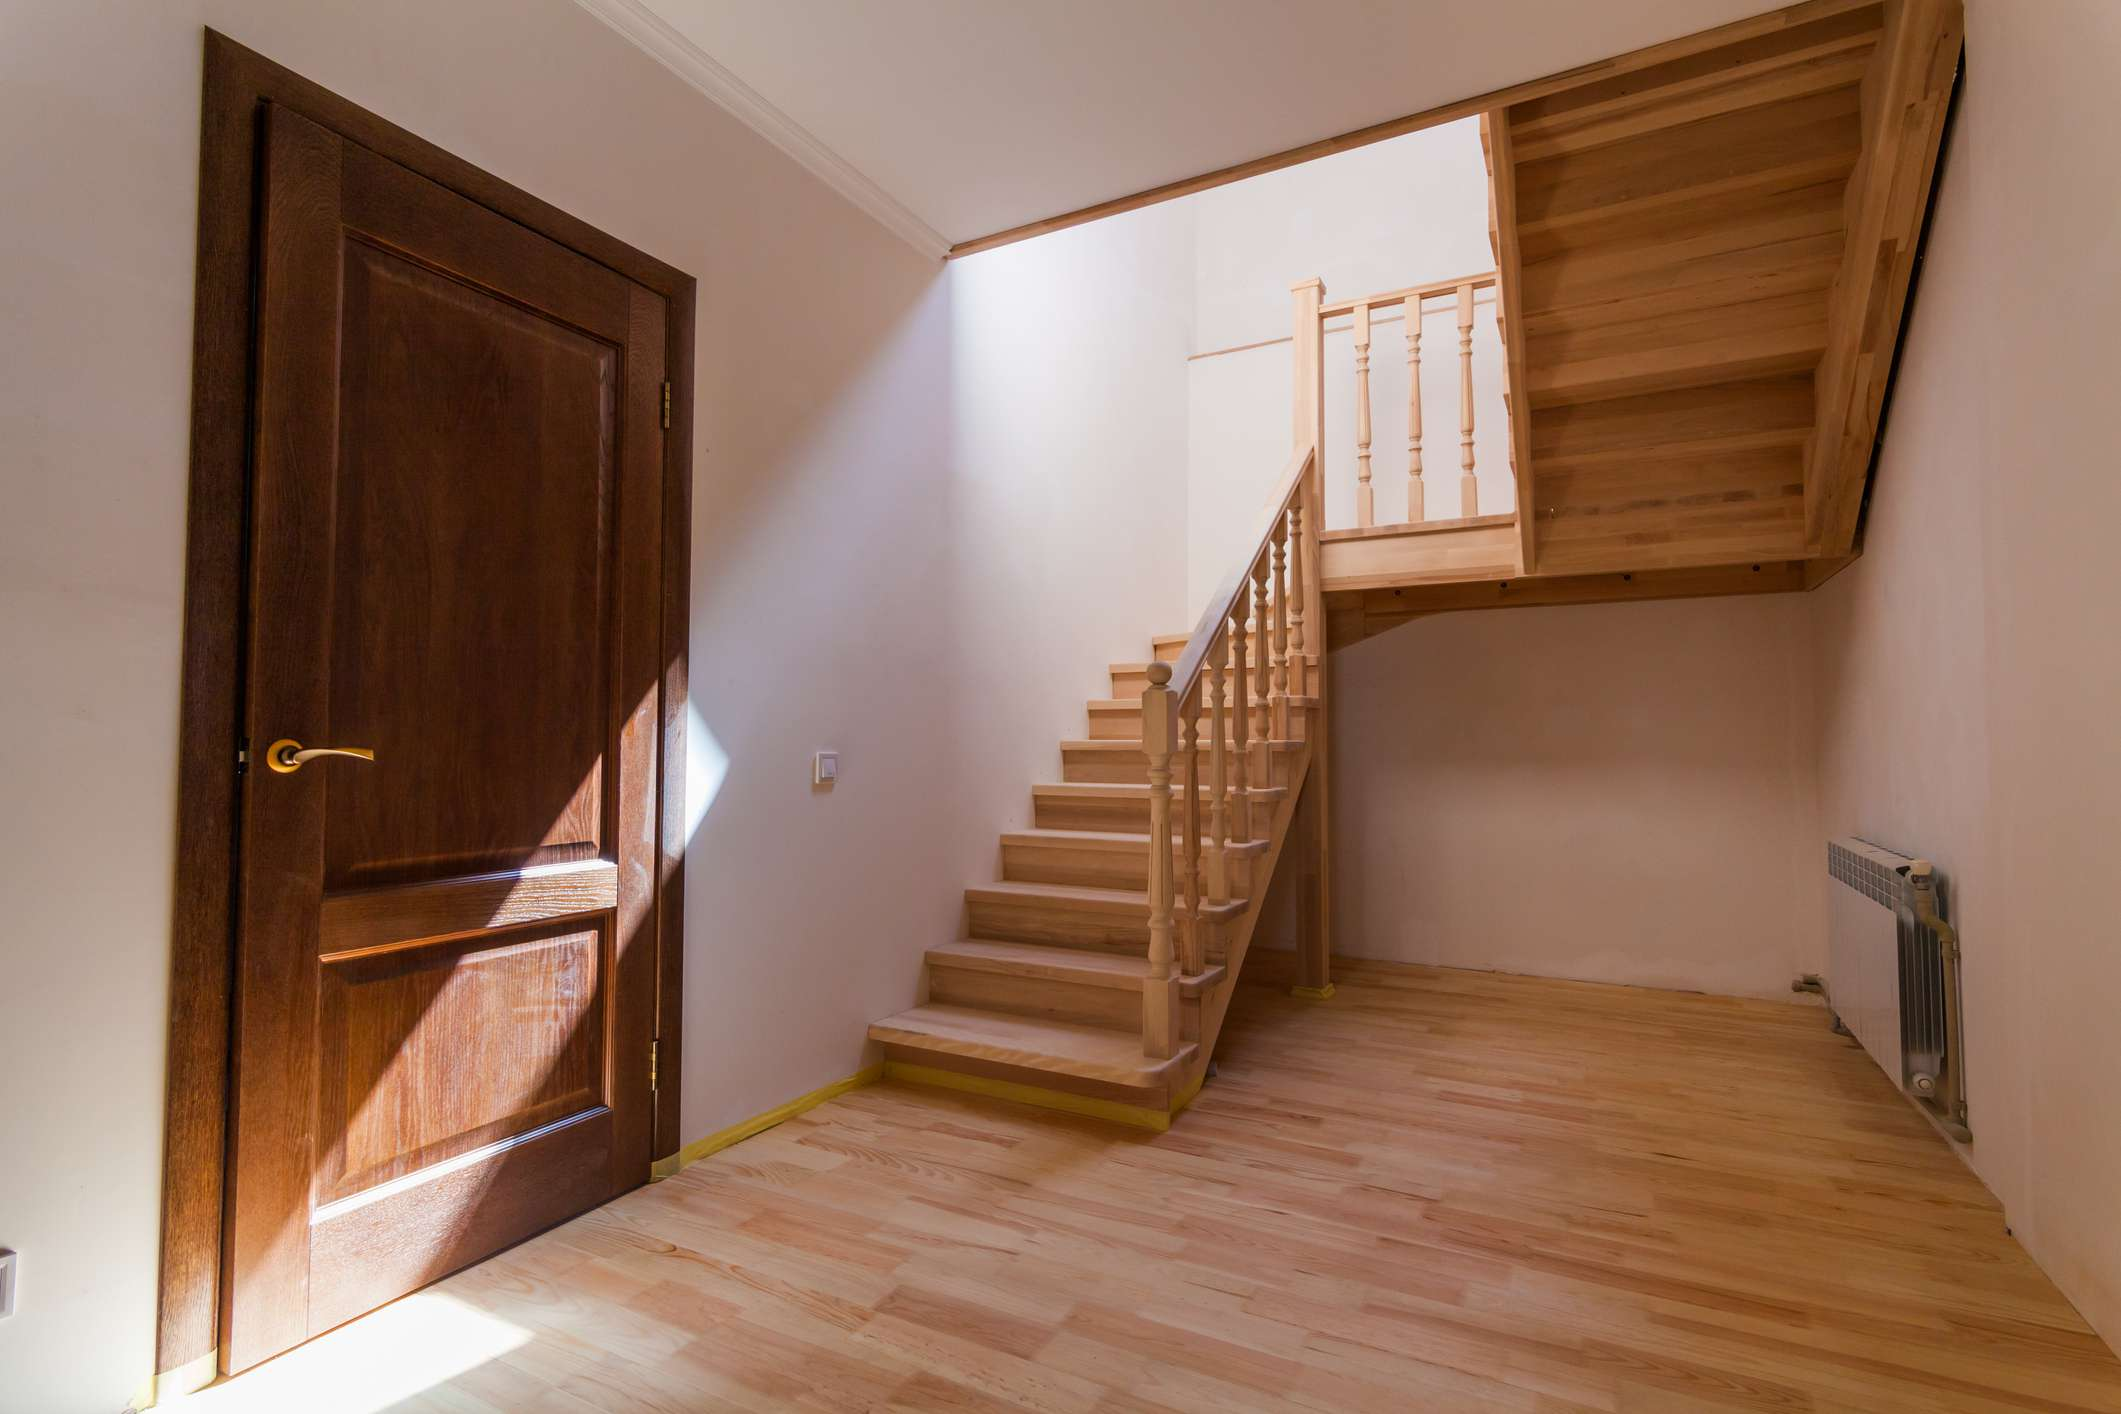 An understair nook used as a storm shelter